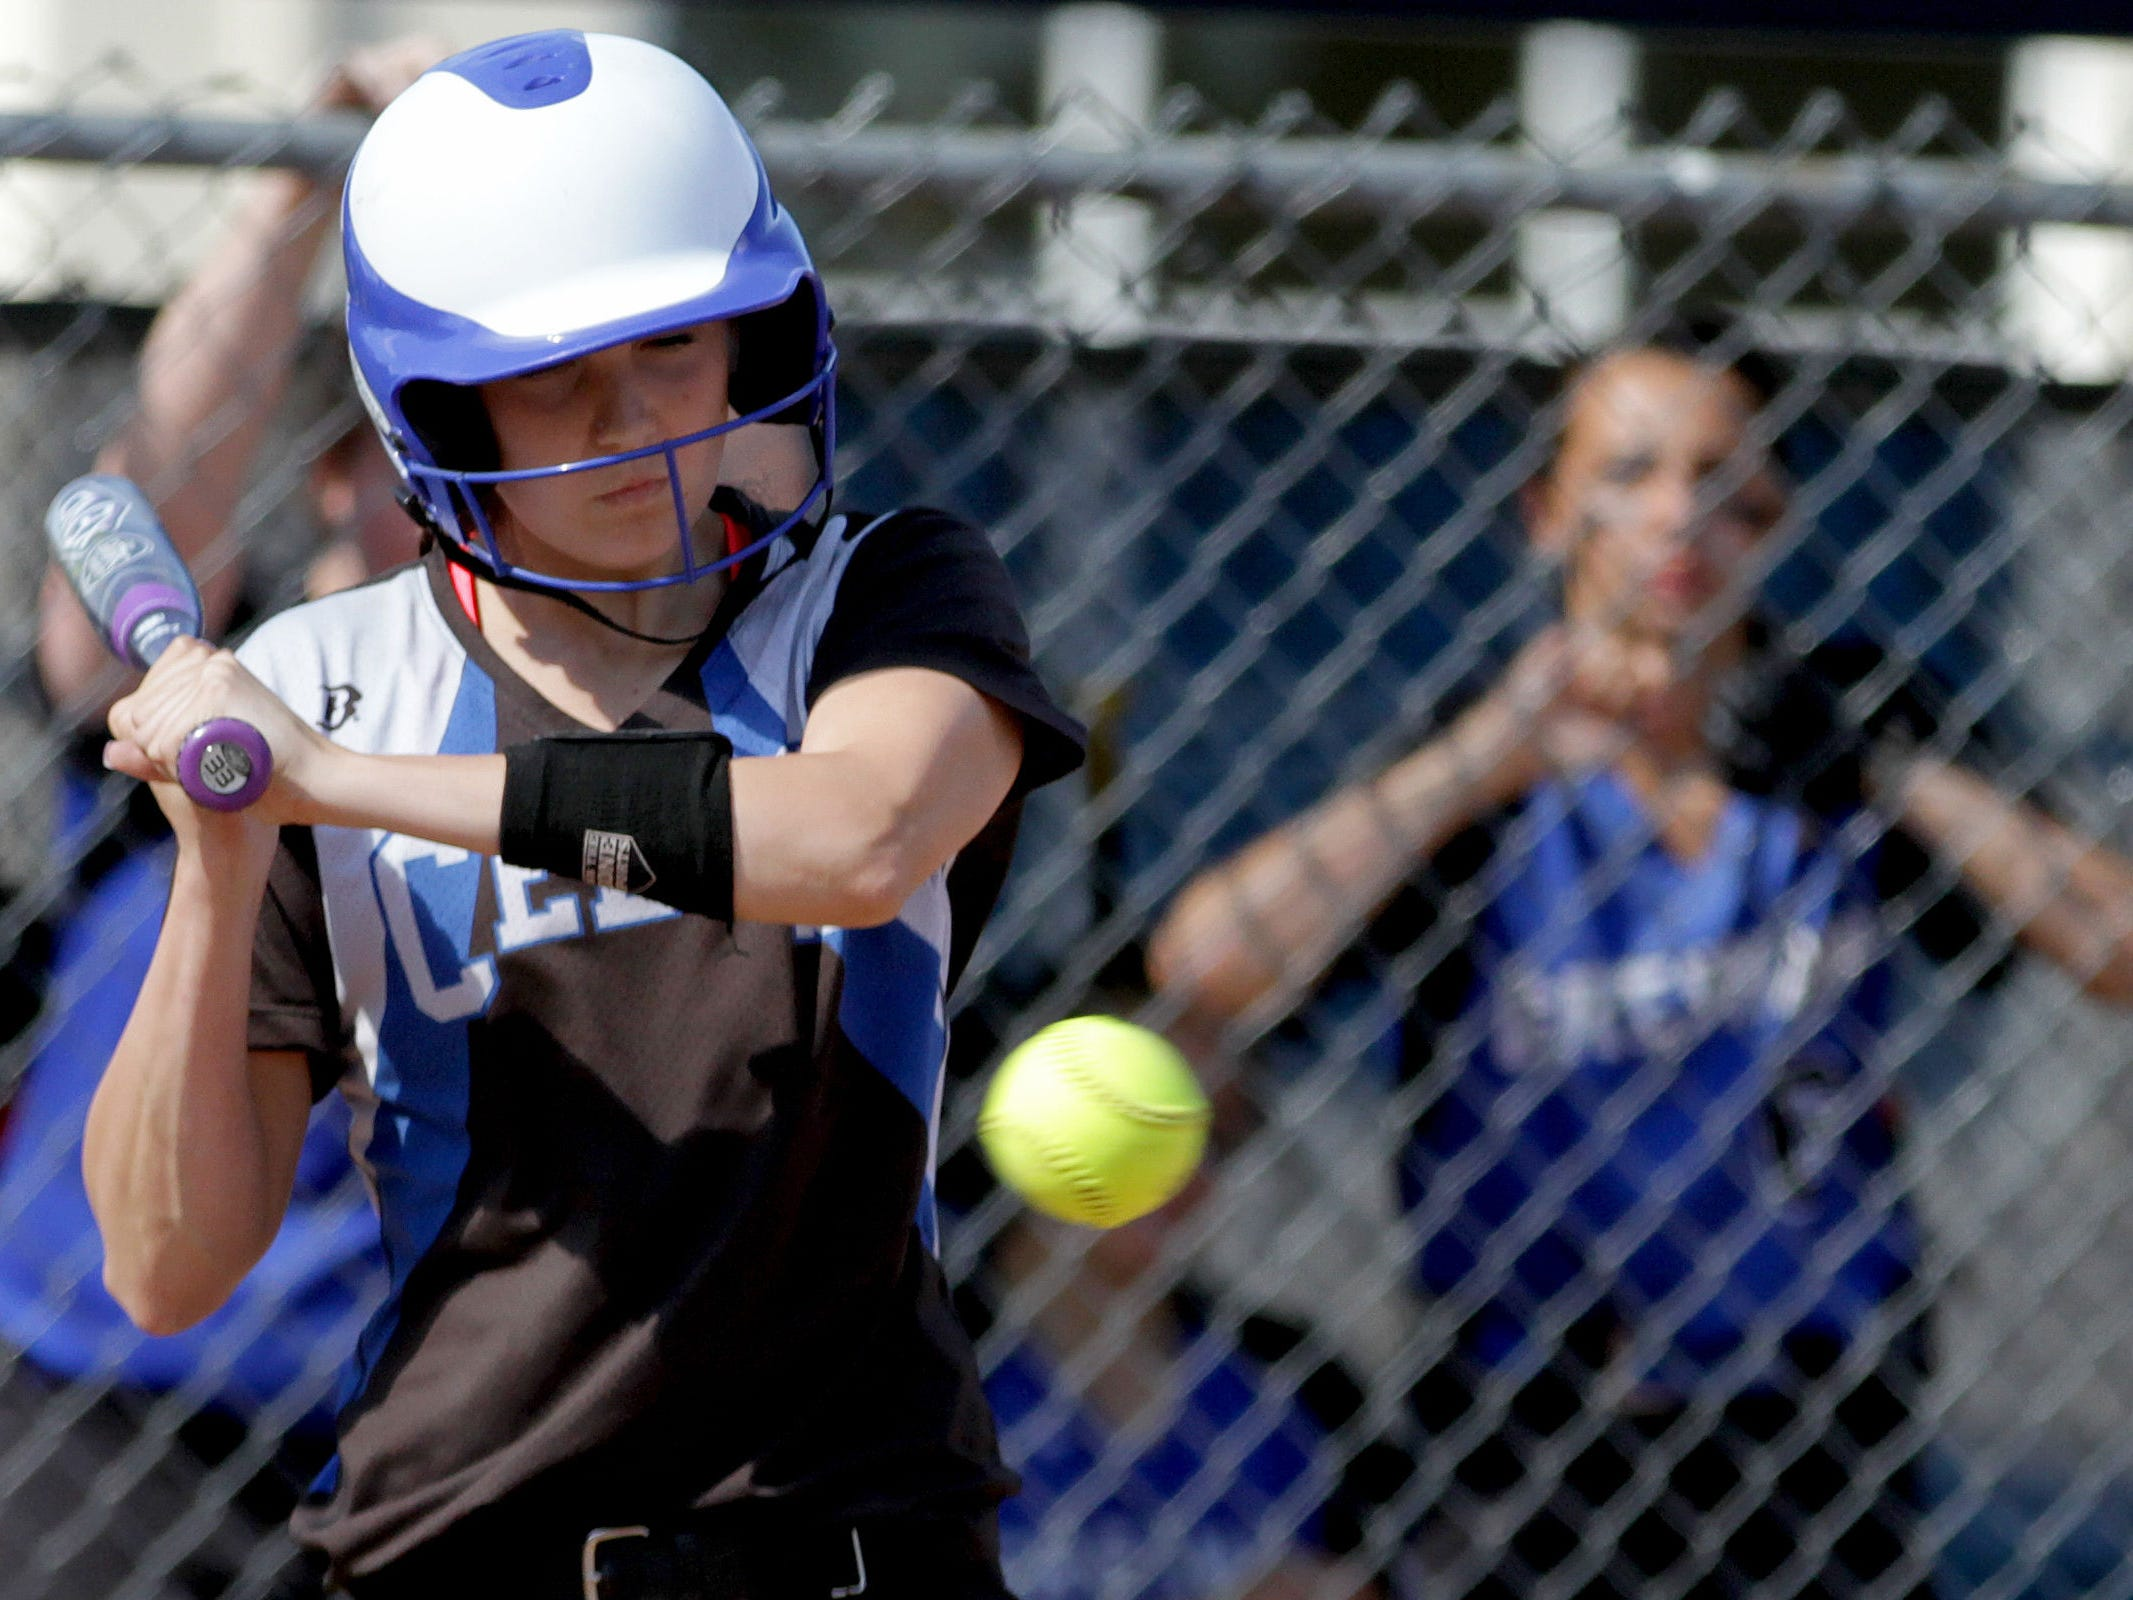 McNary's Megan Ulrey (26) bats in the Gresham vs. McNary softball game, in the first round of the OSAA class 6A state playoffs, at McNary High School in Keizer on Monday, May 25, 2015. McNary won the game 11-7.